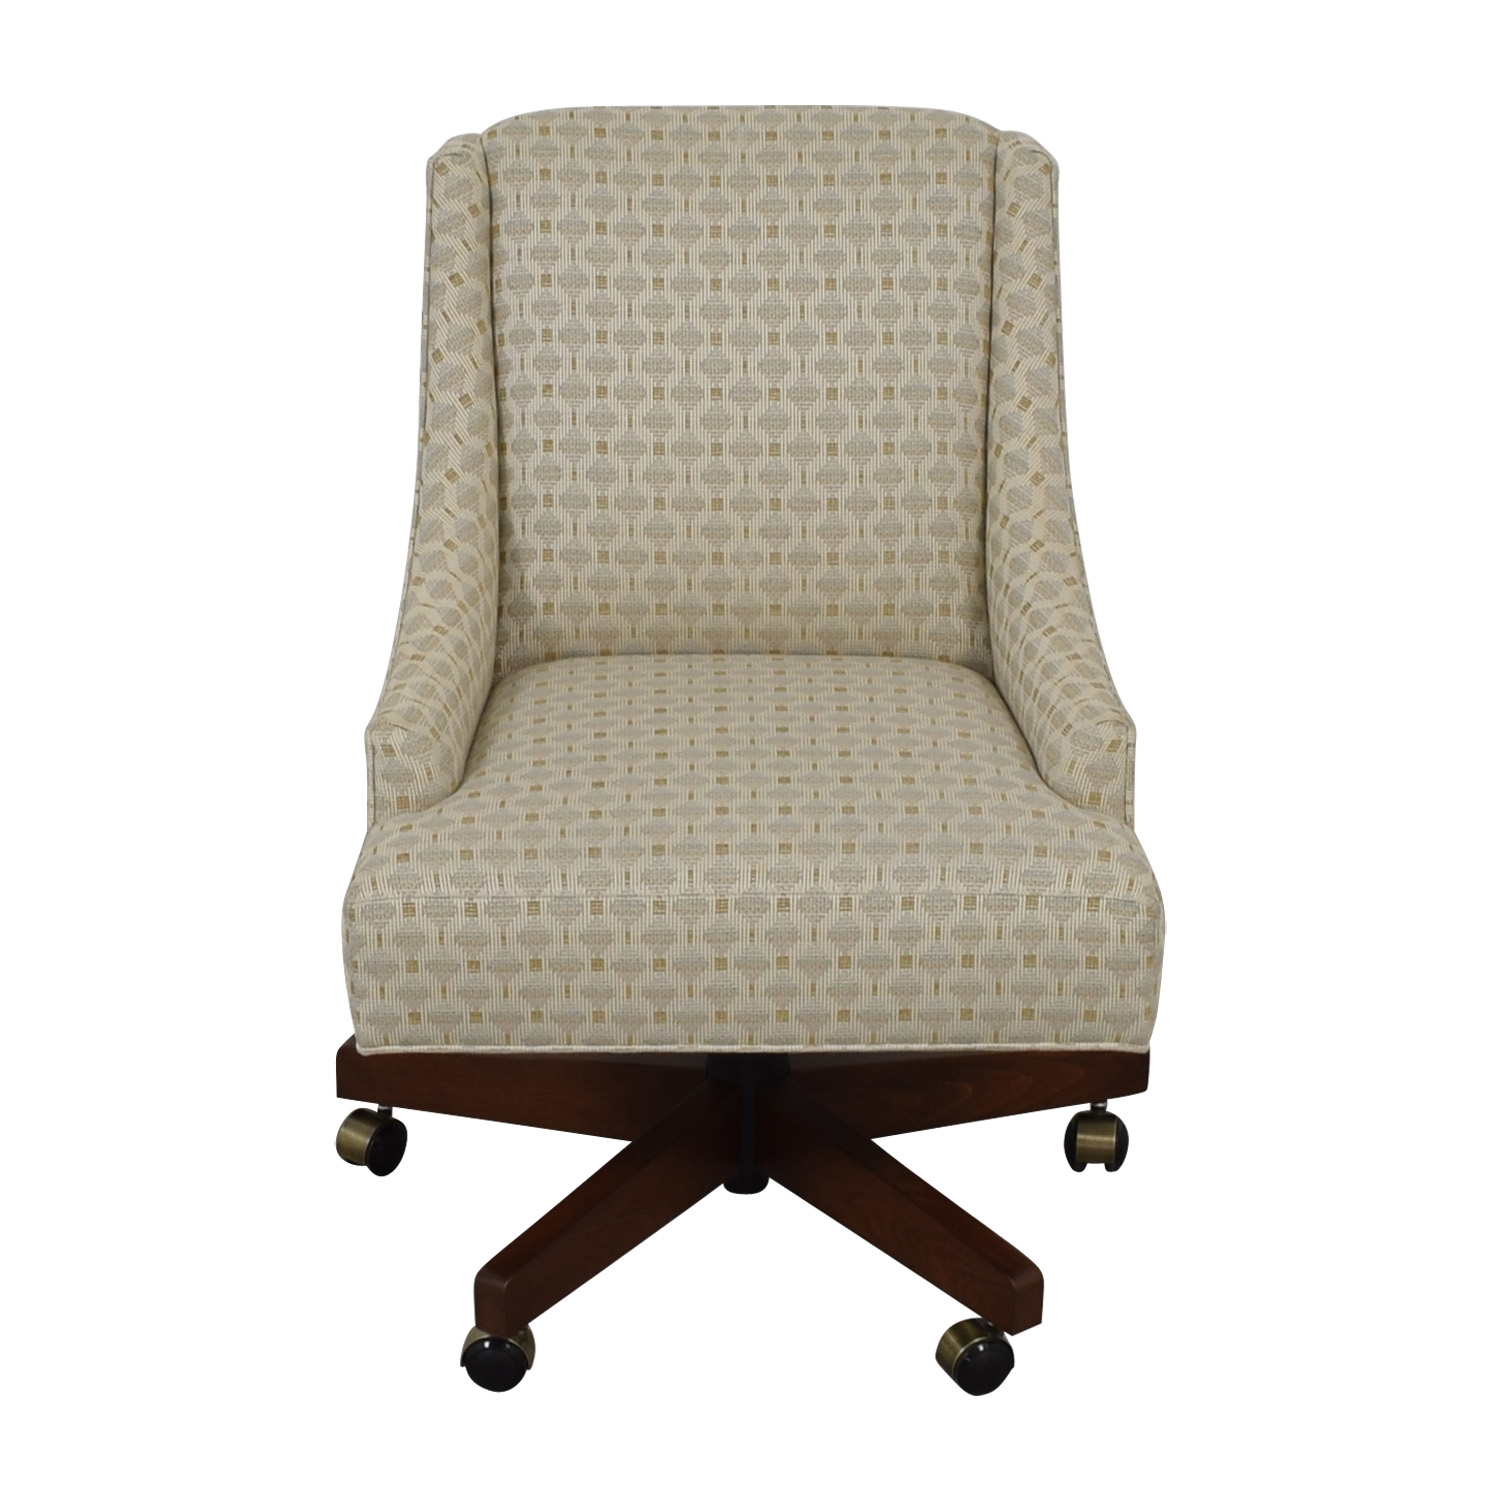 Ethan Allen Ethan Allen Beige Upholstered Office Chair on Castors used